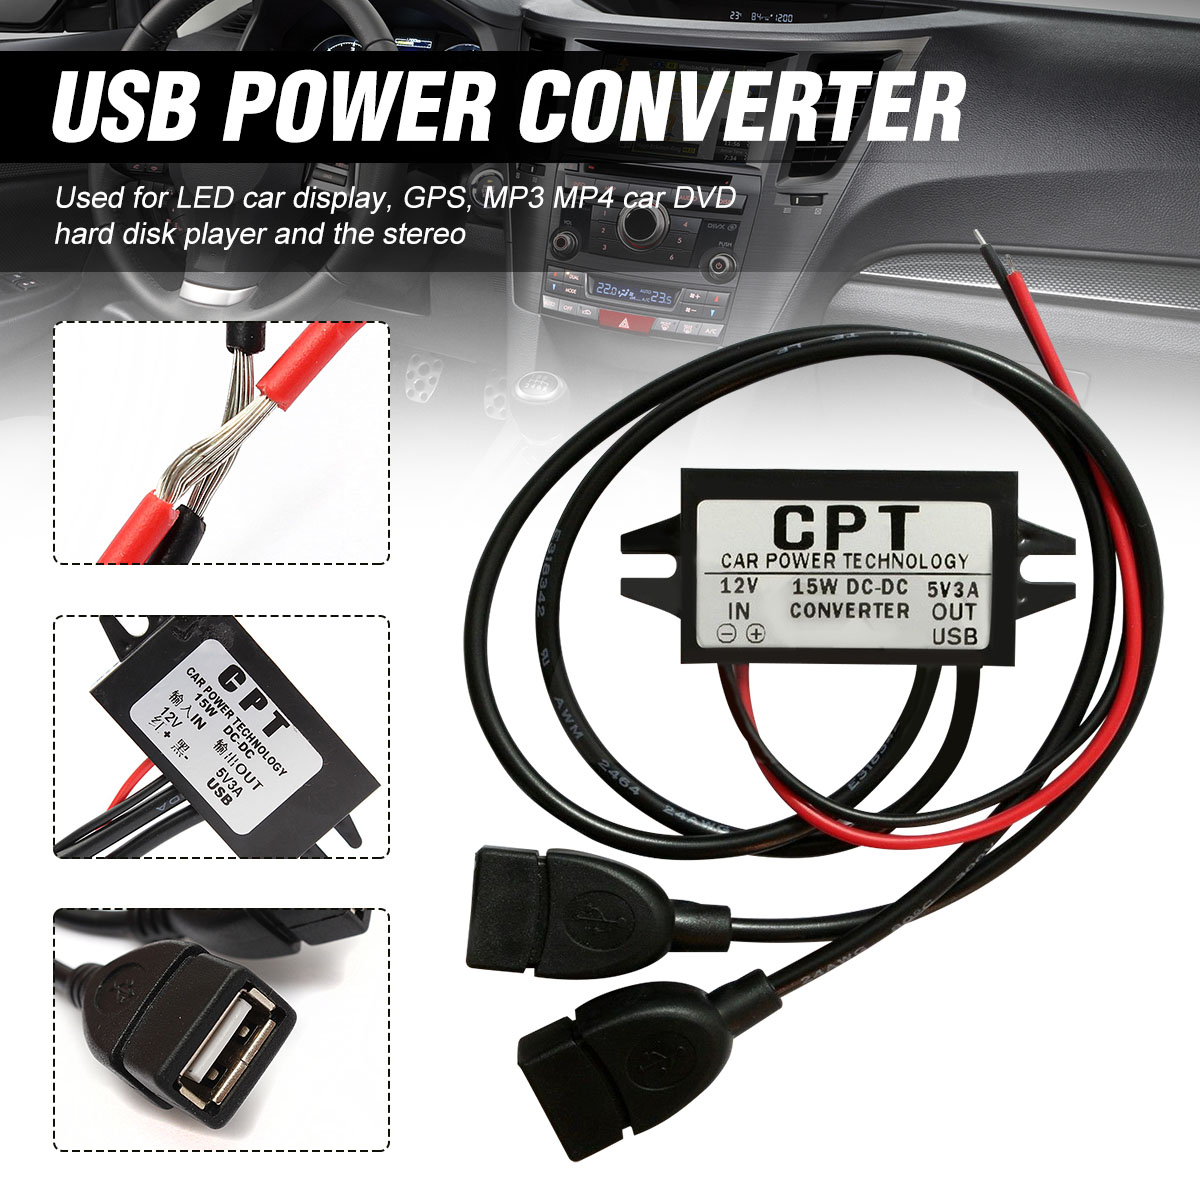 Dual Double 2 USB <font><b>DC</b></font>-<font><b>DC</b></font> <font><b>Car</b></font> <font><b>Converter</b></font> Module <font><b>12V</b></font> <font><b>To</b></font> <font><b>5V</b></font> <font><b>3A</b></font> 15W <font><b>Power</b></font> <font><b>Adapter</b></font> used for LED <font><b>Car</b></font> Display GPS Over Voltage Protection image